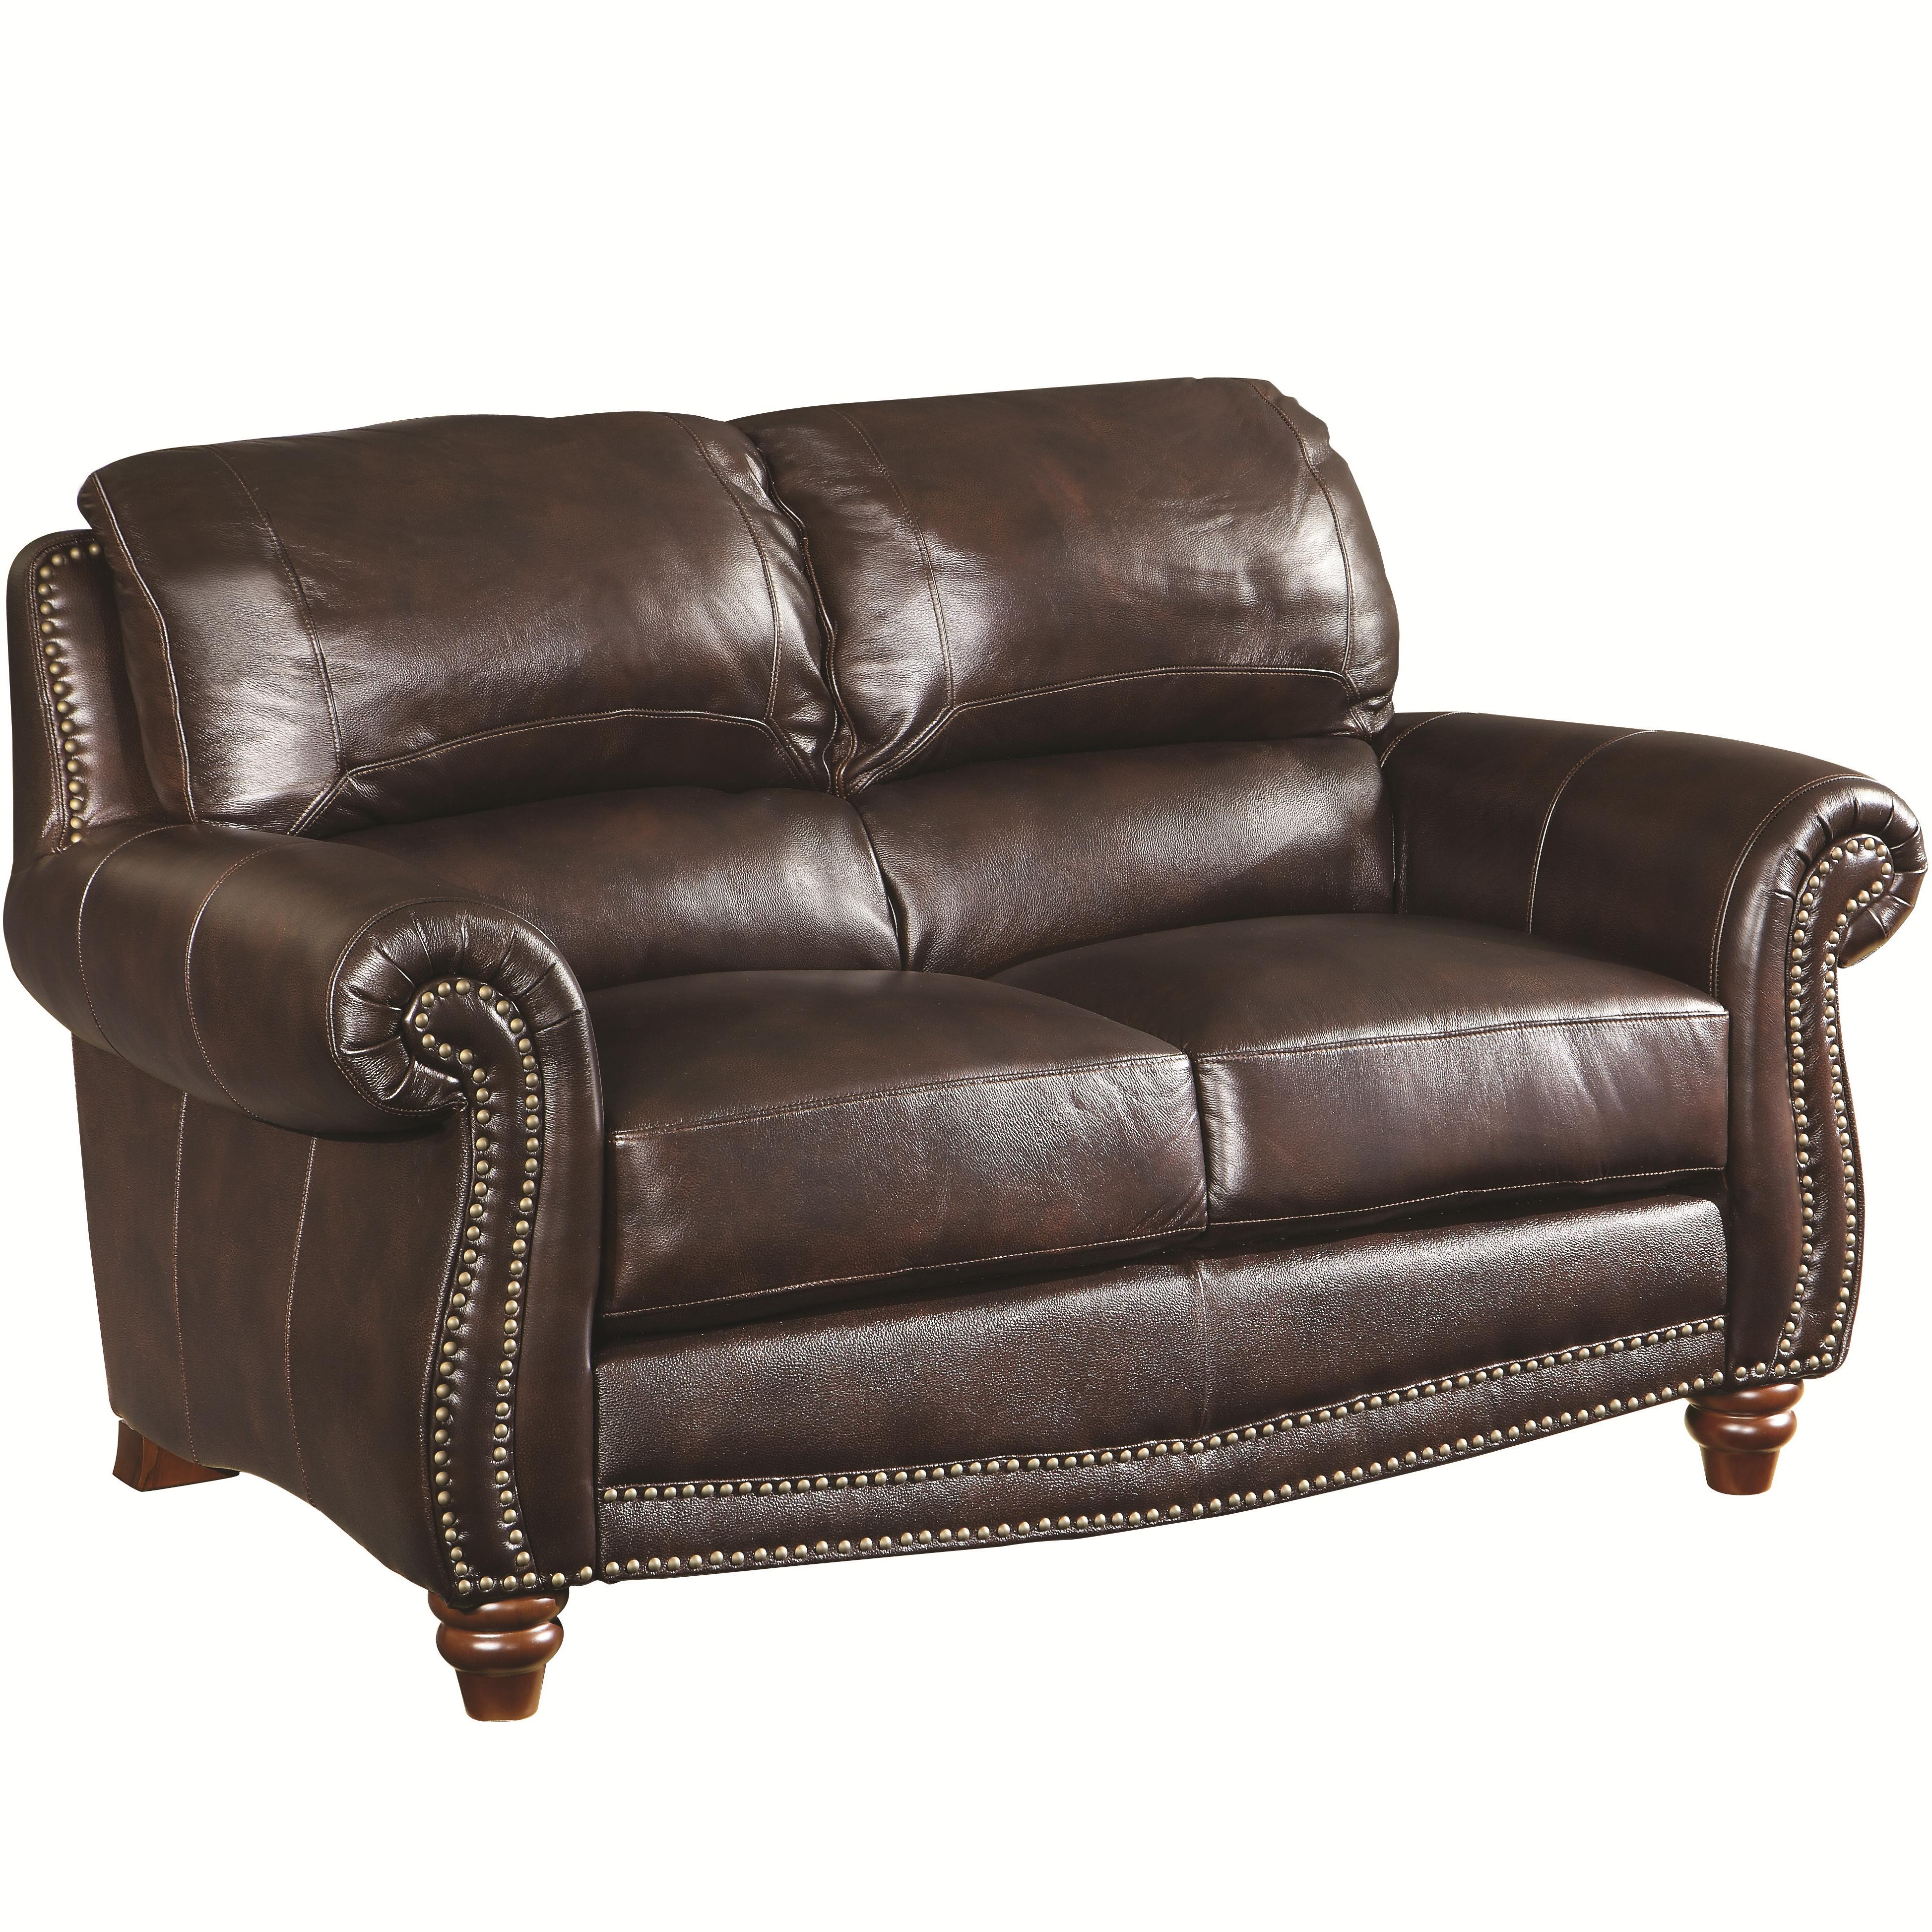 Coaster Lockhart Traditional Love Seat - Item Number: 504692